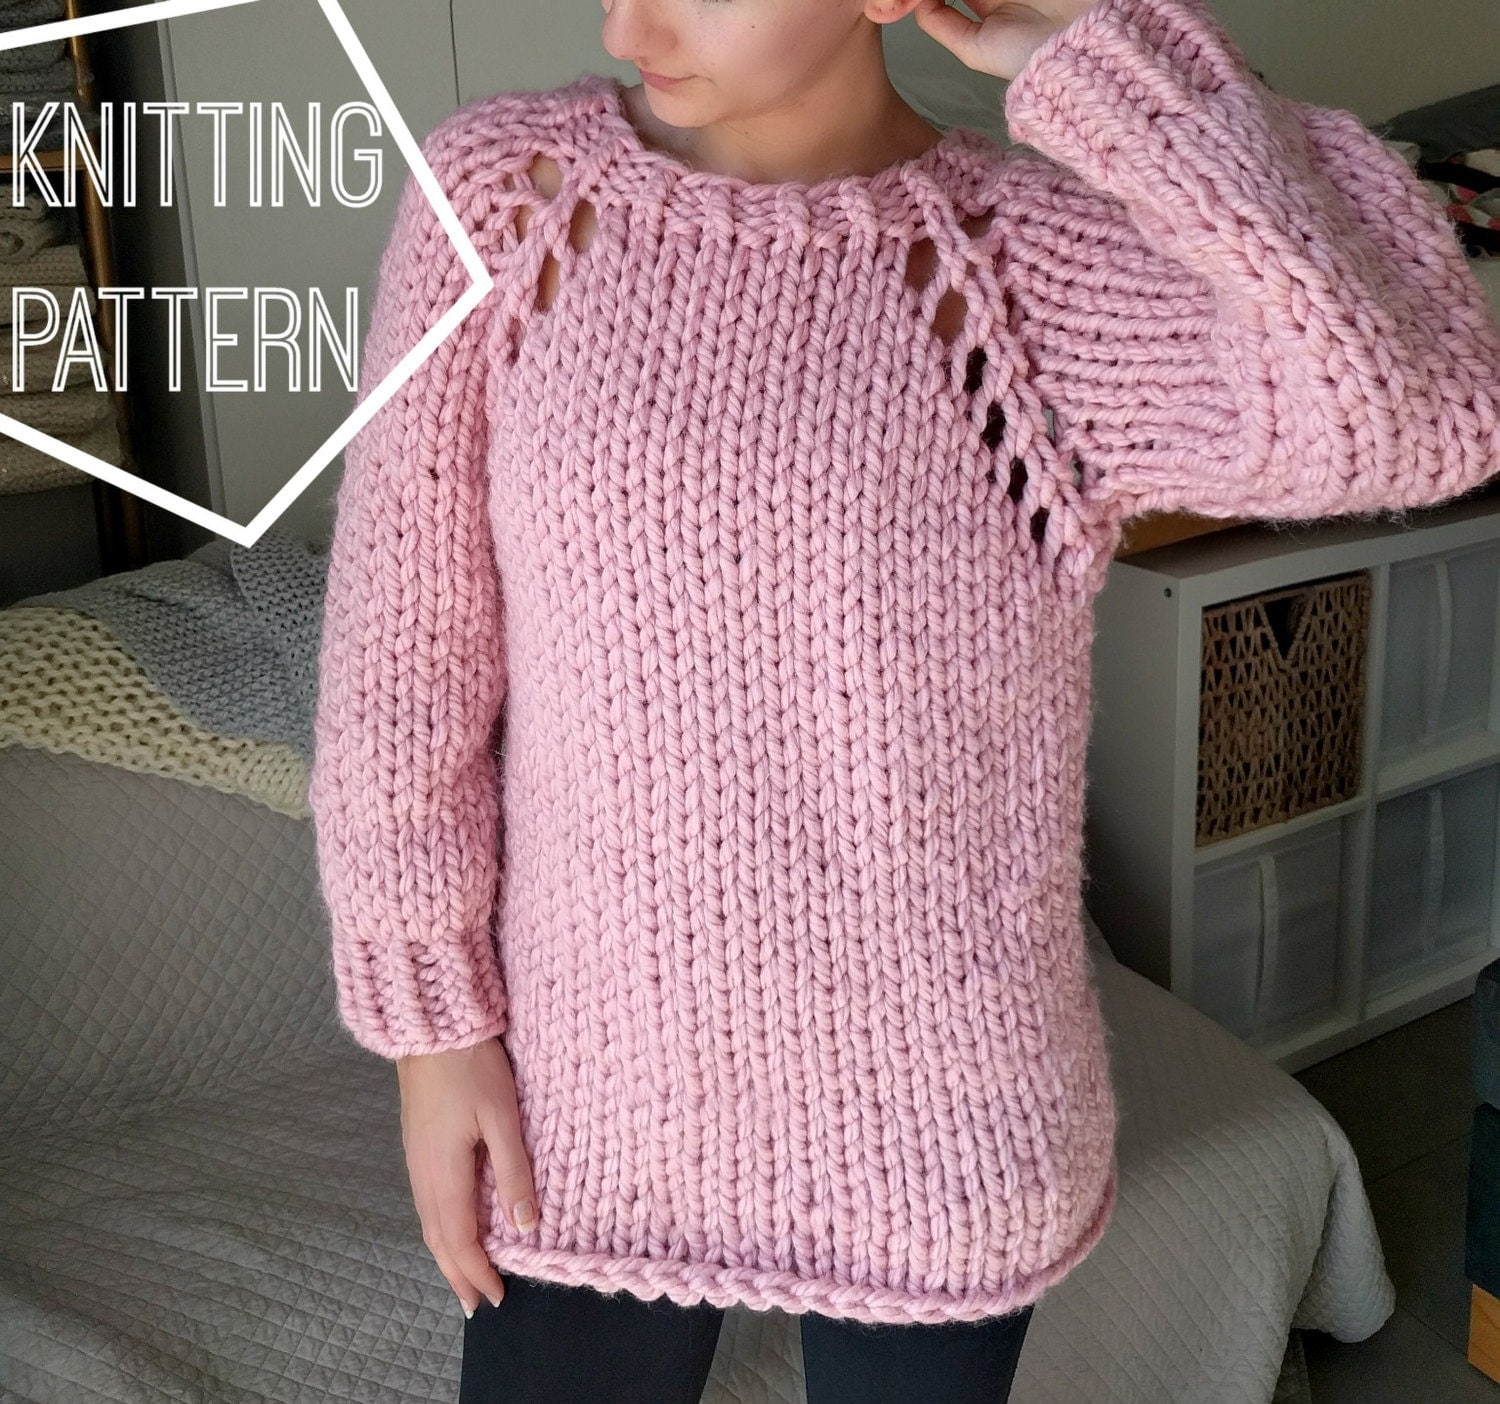 Super Chunky Jumper Knitting Pattern : Chunky Knit Sweater Pattern, Top Down Raglan Sweater Pattern, Super Chunky Kn...